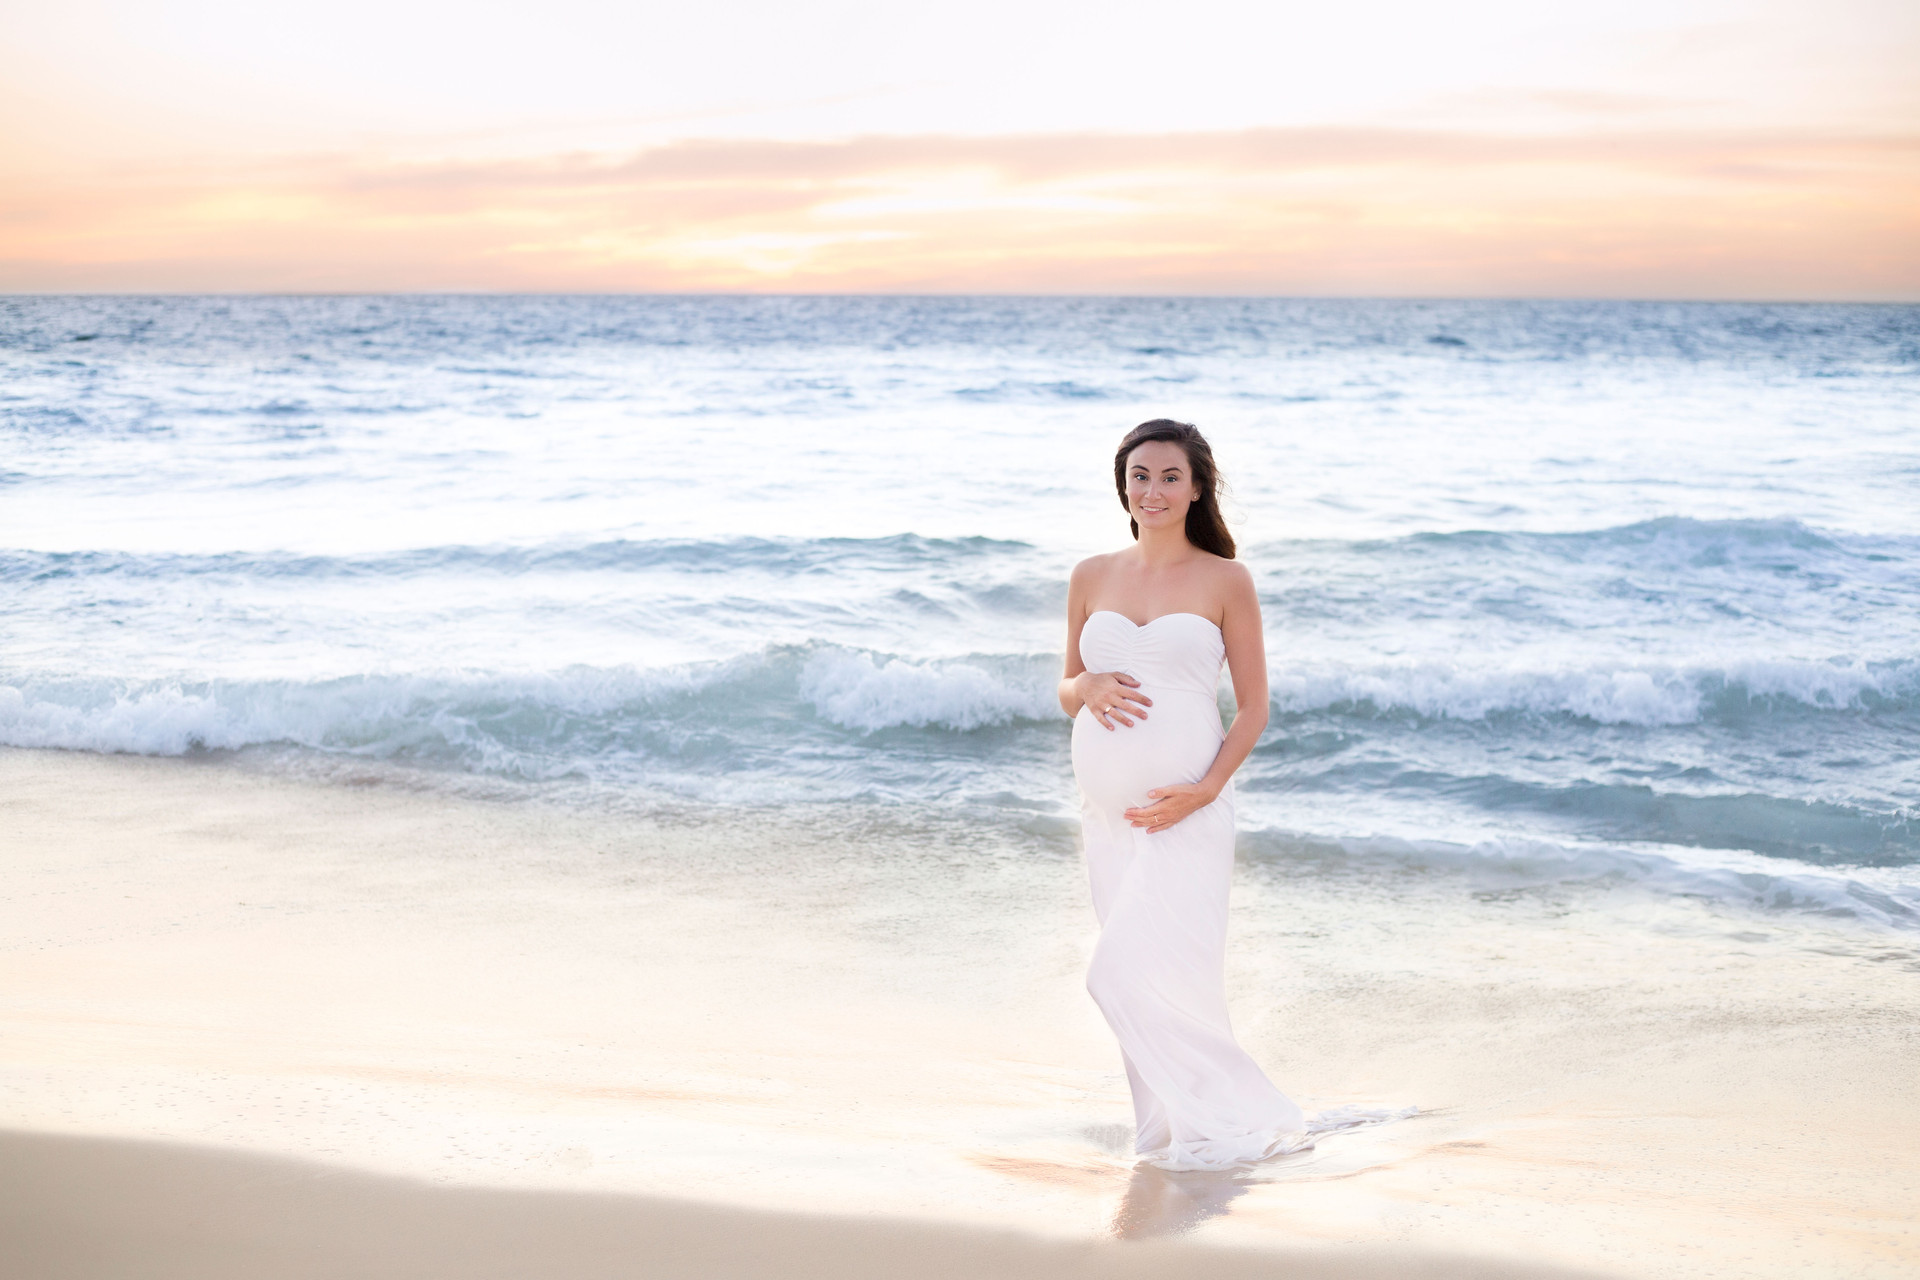 Maternity Photograph Yanchep Alkimos Butler Clarkson Quinns Rocks Two Rocks Mindarie Iluka Burns Beach Ocean Reef Kinross Sorrento Hillarys Padbury Scarborough Perth Woodvale Greenwood